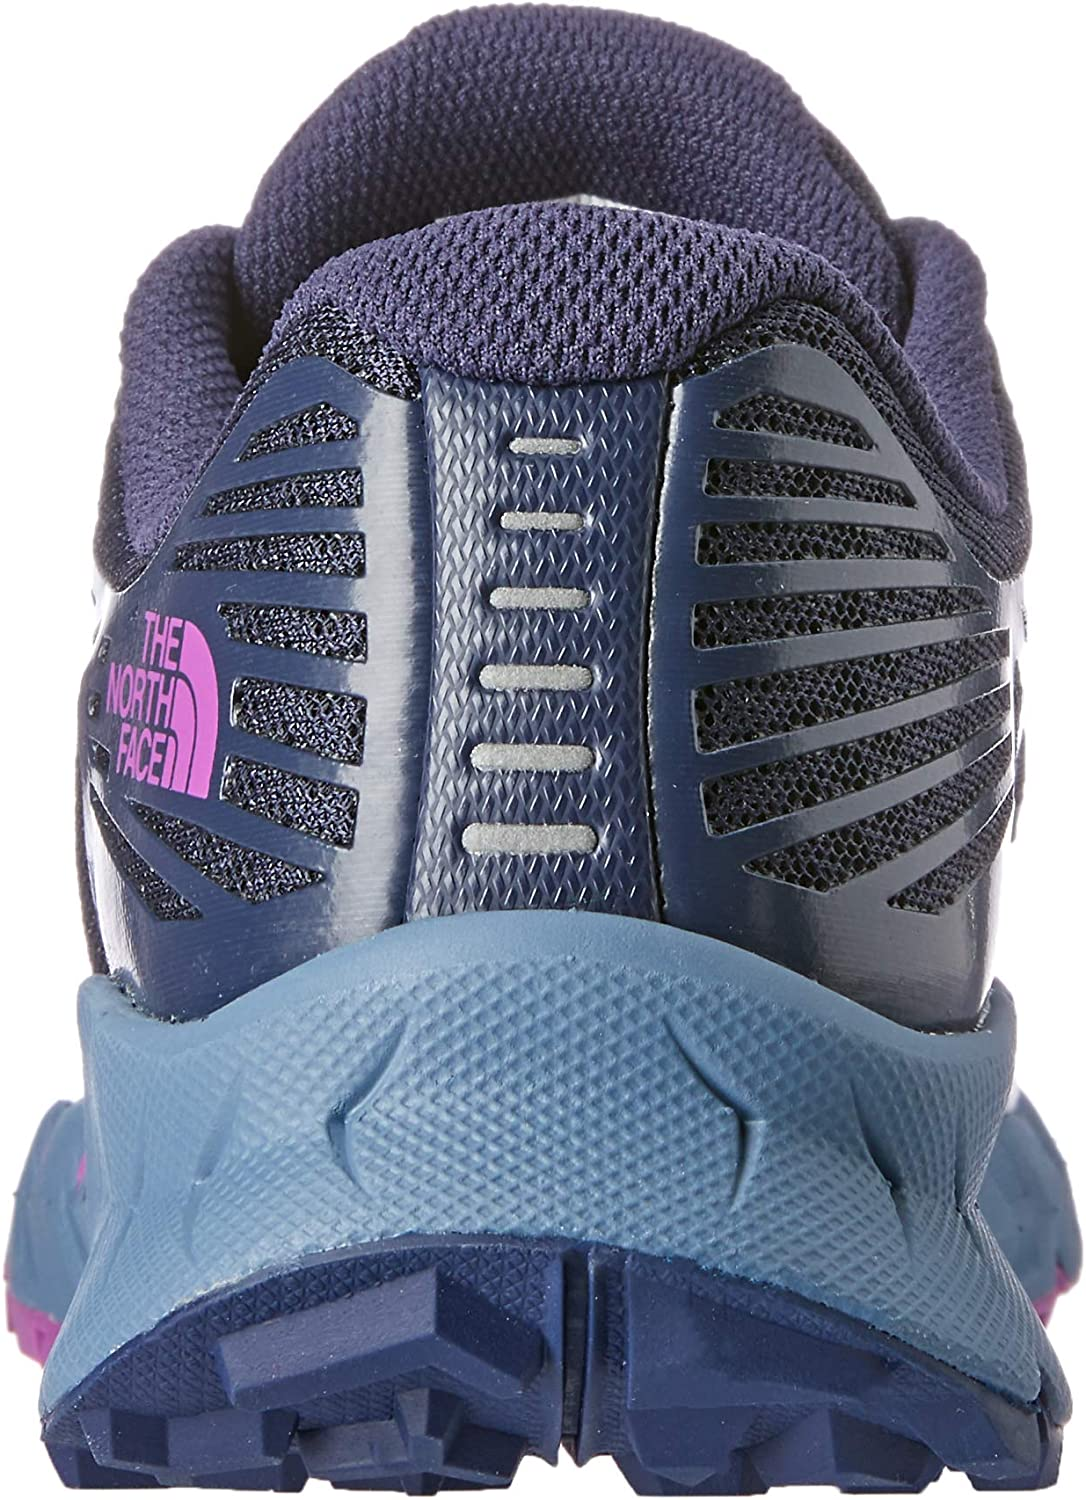 The North Face Women's Corvara Trail Running Shoes, Peacot NVY/PRP Catus Flwr Blue (Peacot Nvy/Prp Catus Flwr)